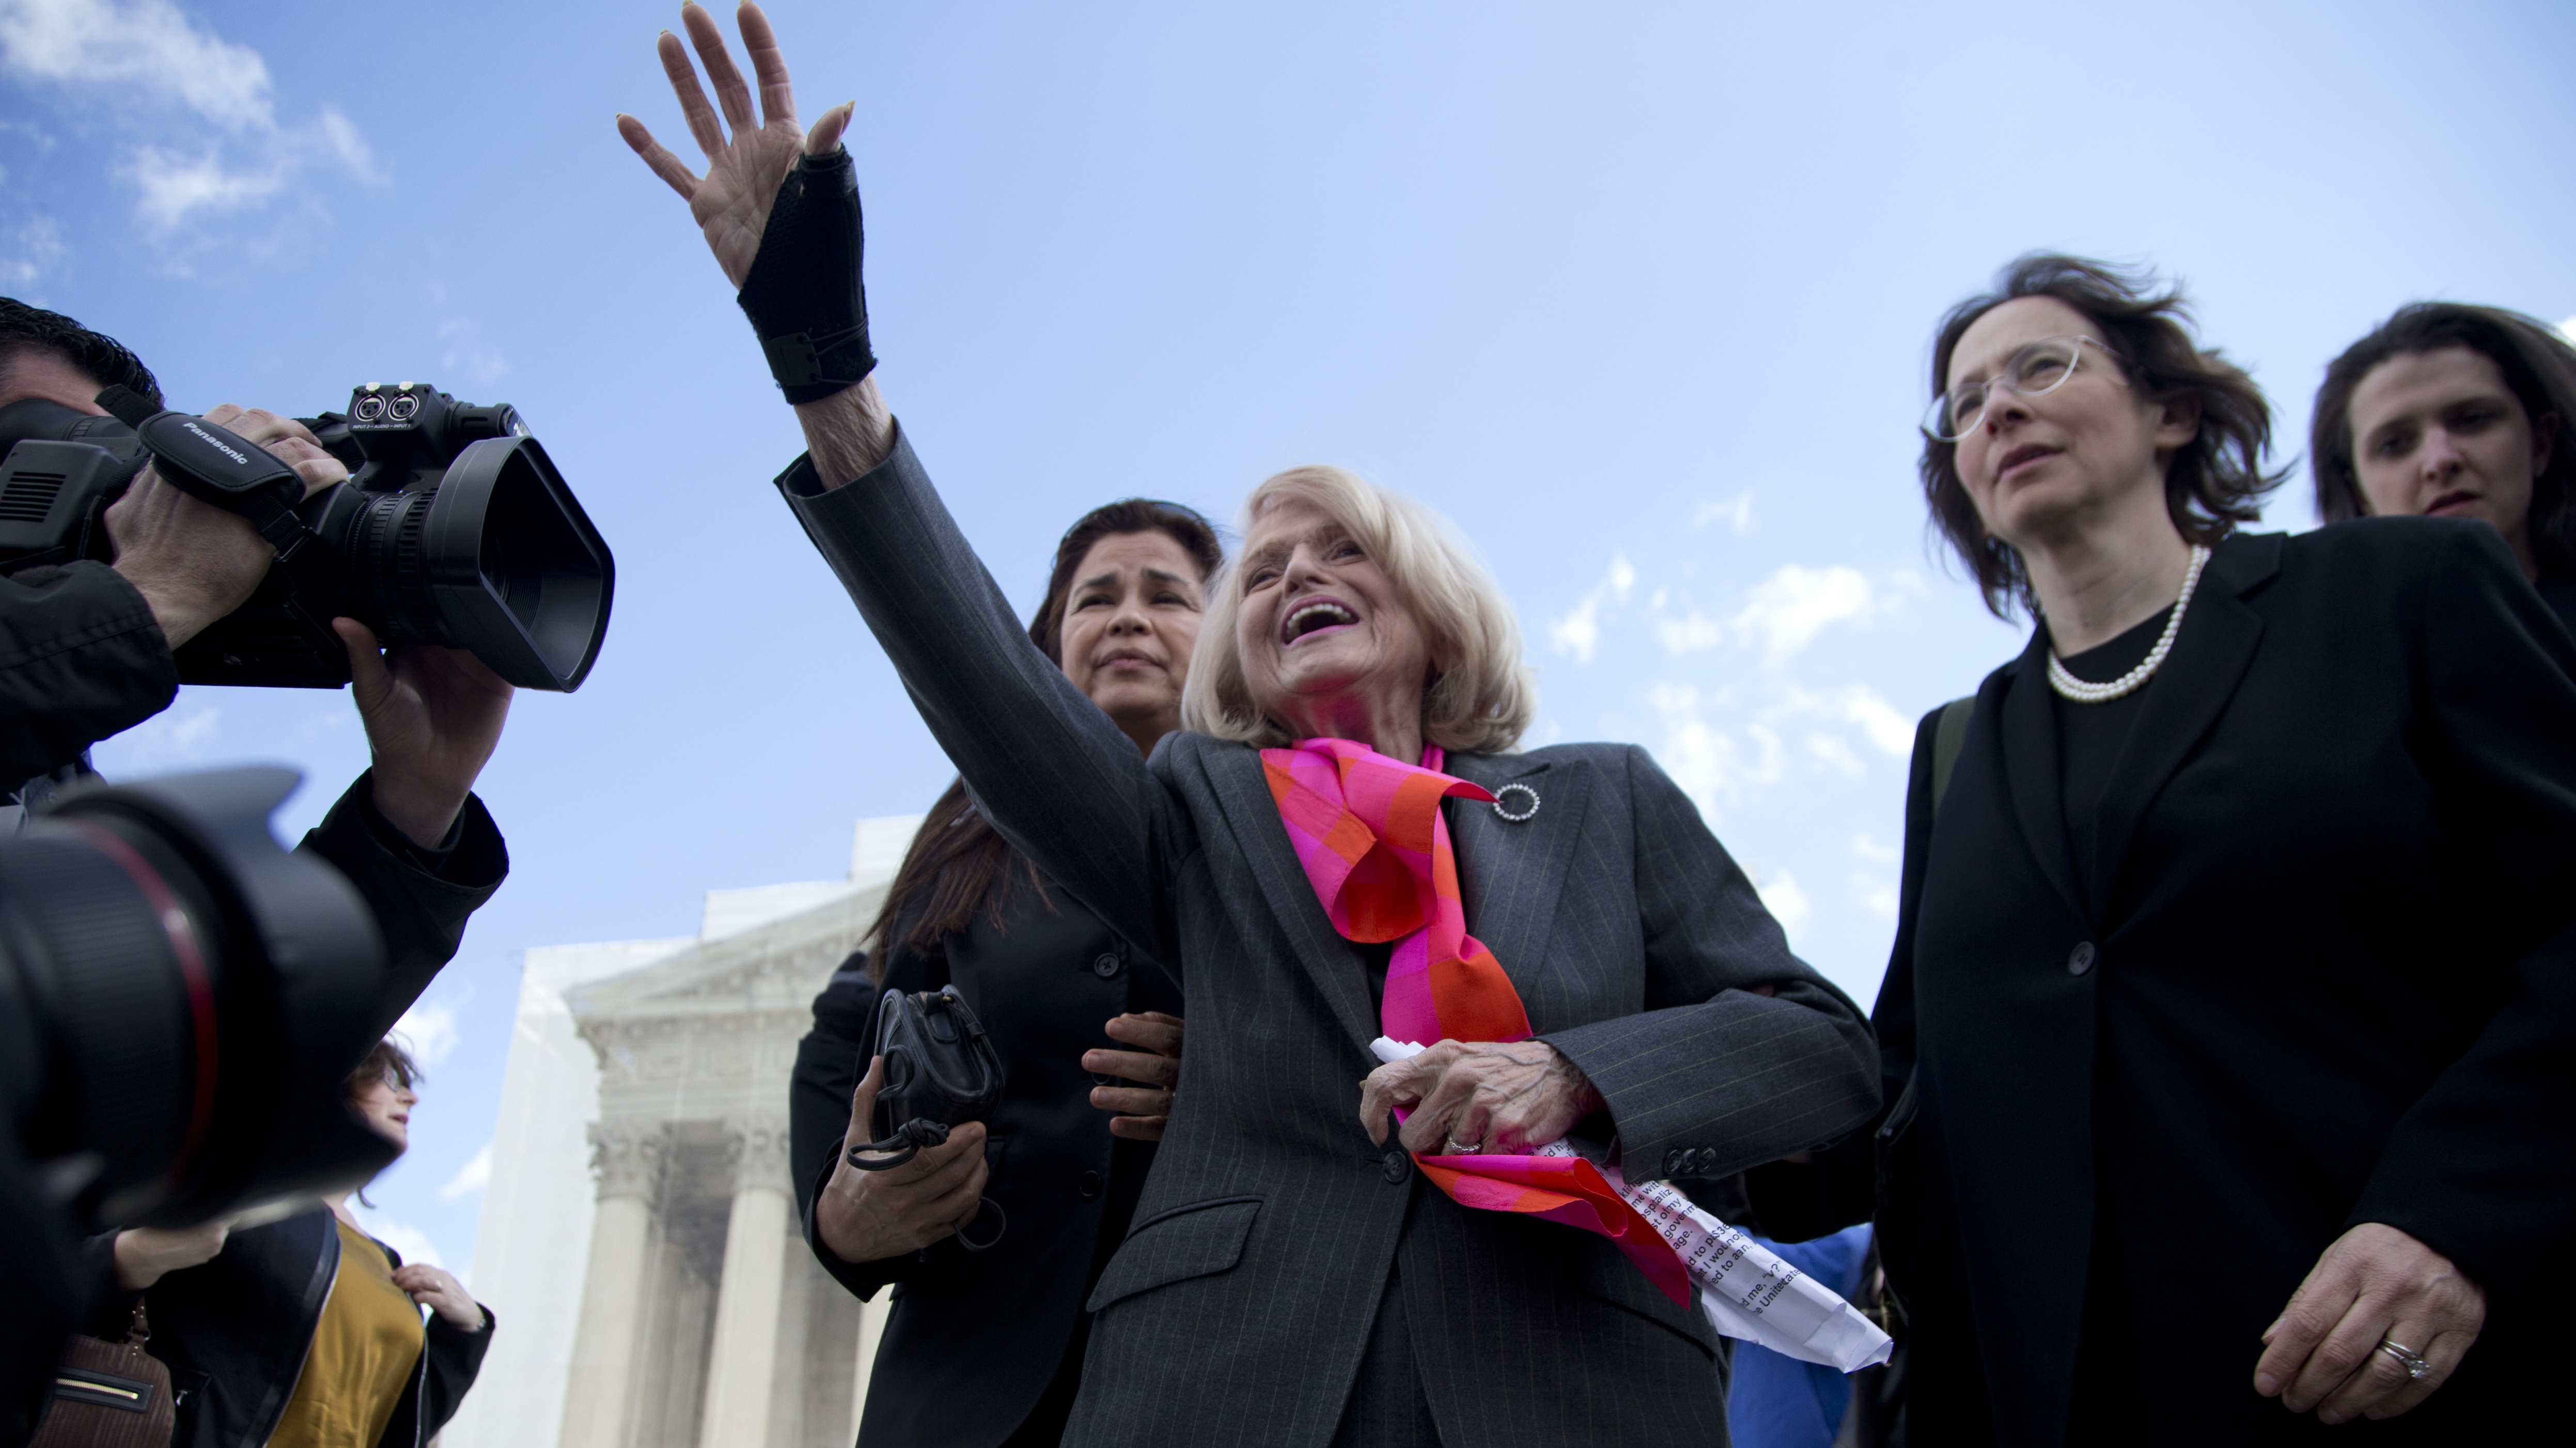 Defense of Marriage Act News